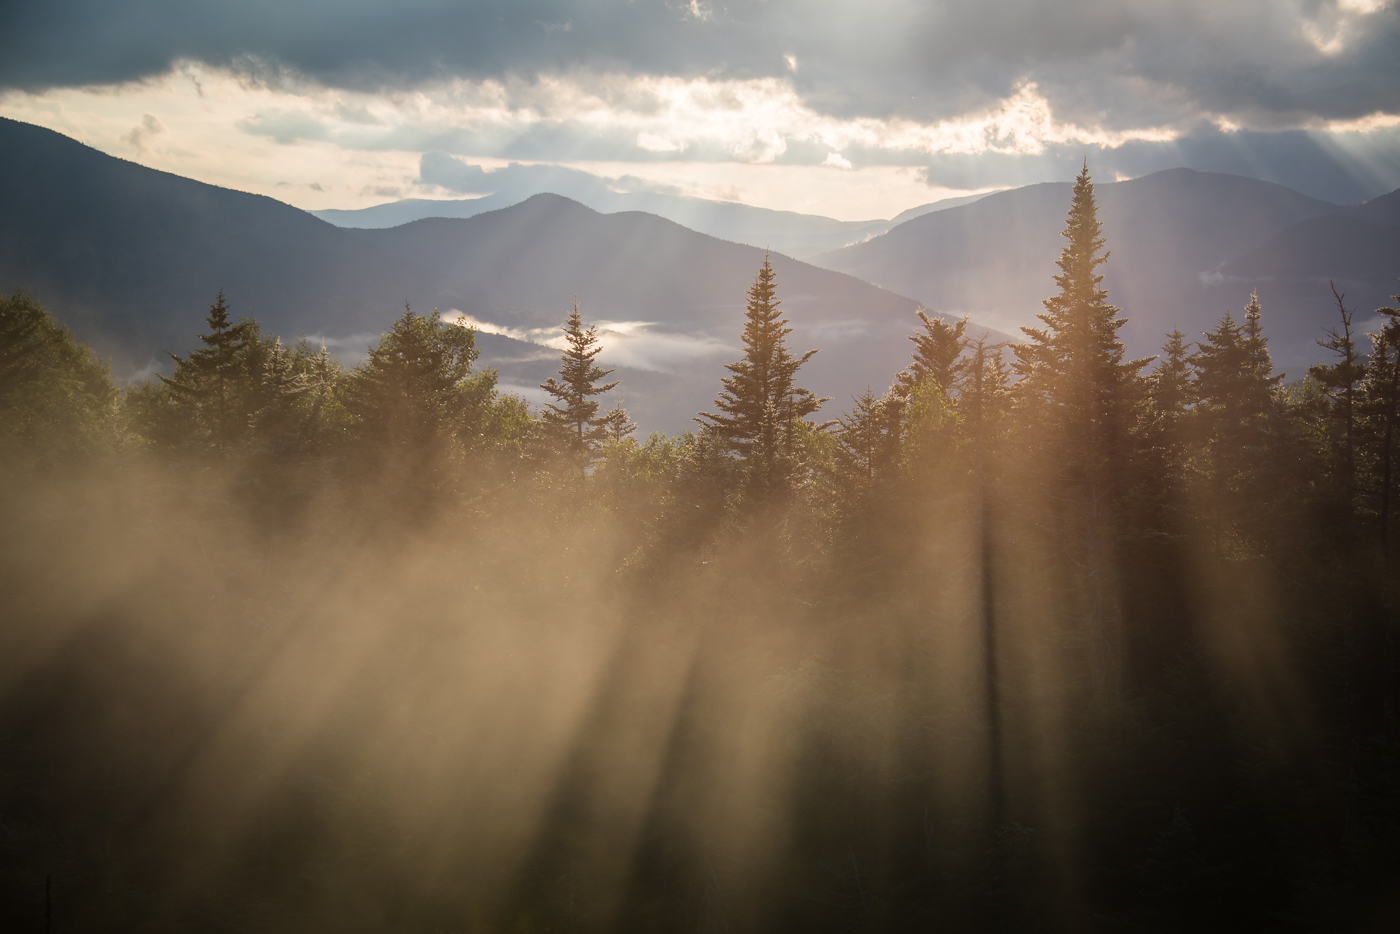 a beautiful sunset on the kancamagus highway in the white mountains, new hampshire, photographed by jamie bannon photography.